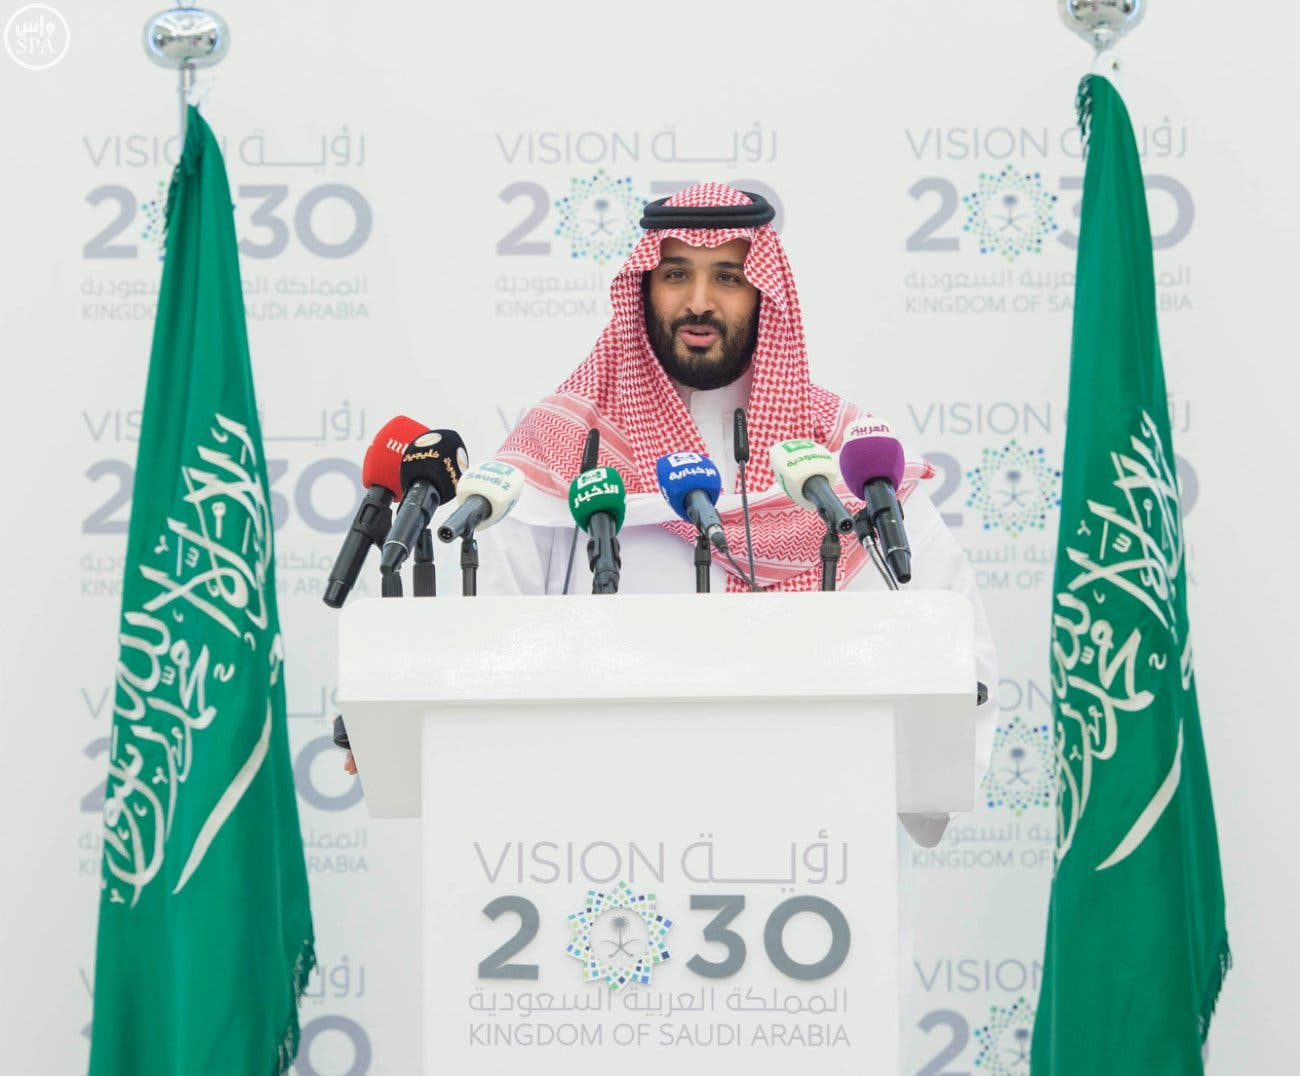 Saudi Crown Prince Mohammed bin Salman introduces Saudi Vision 2030 during a press conference. (SPA)